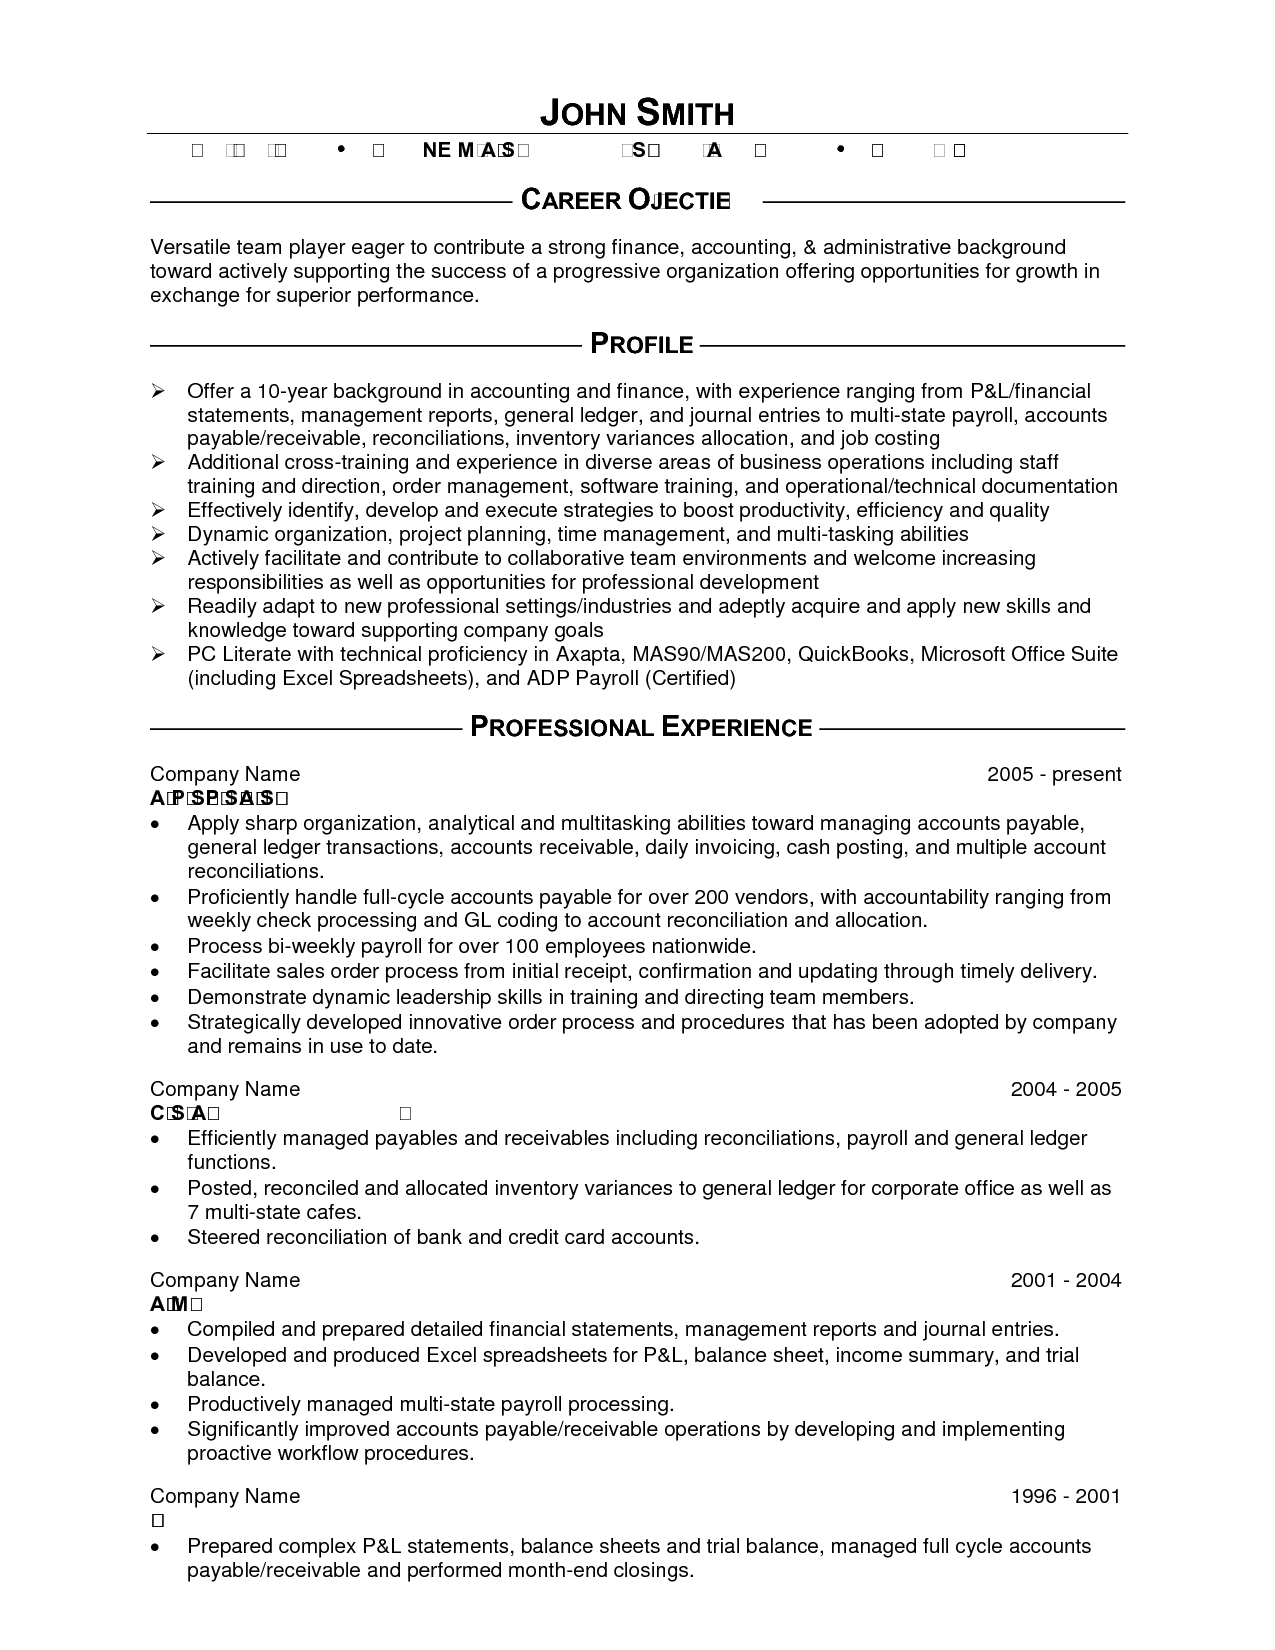 2 cpa resume template example accountant accounting templates s – Resume Objective for Accounting Job